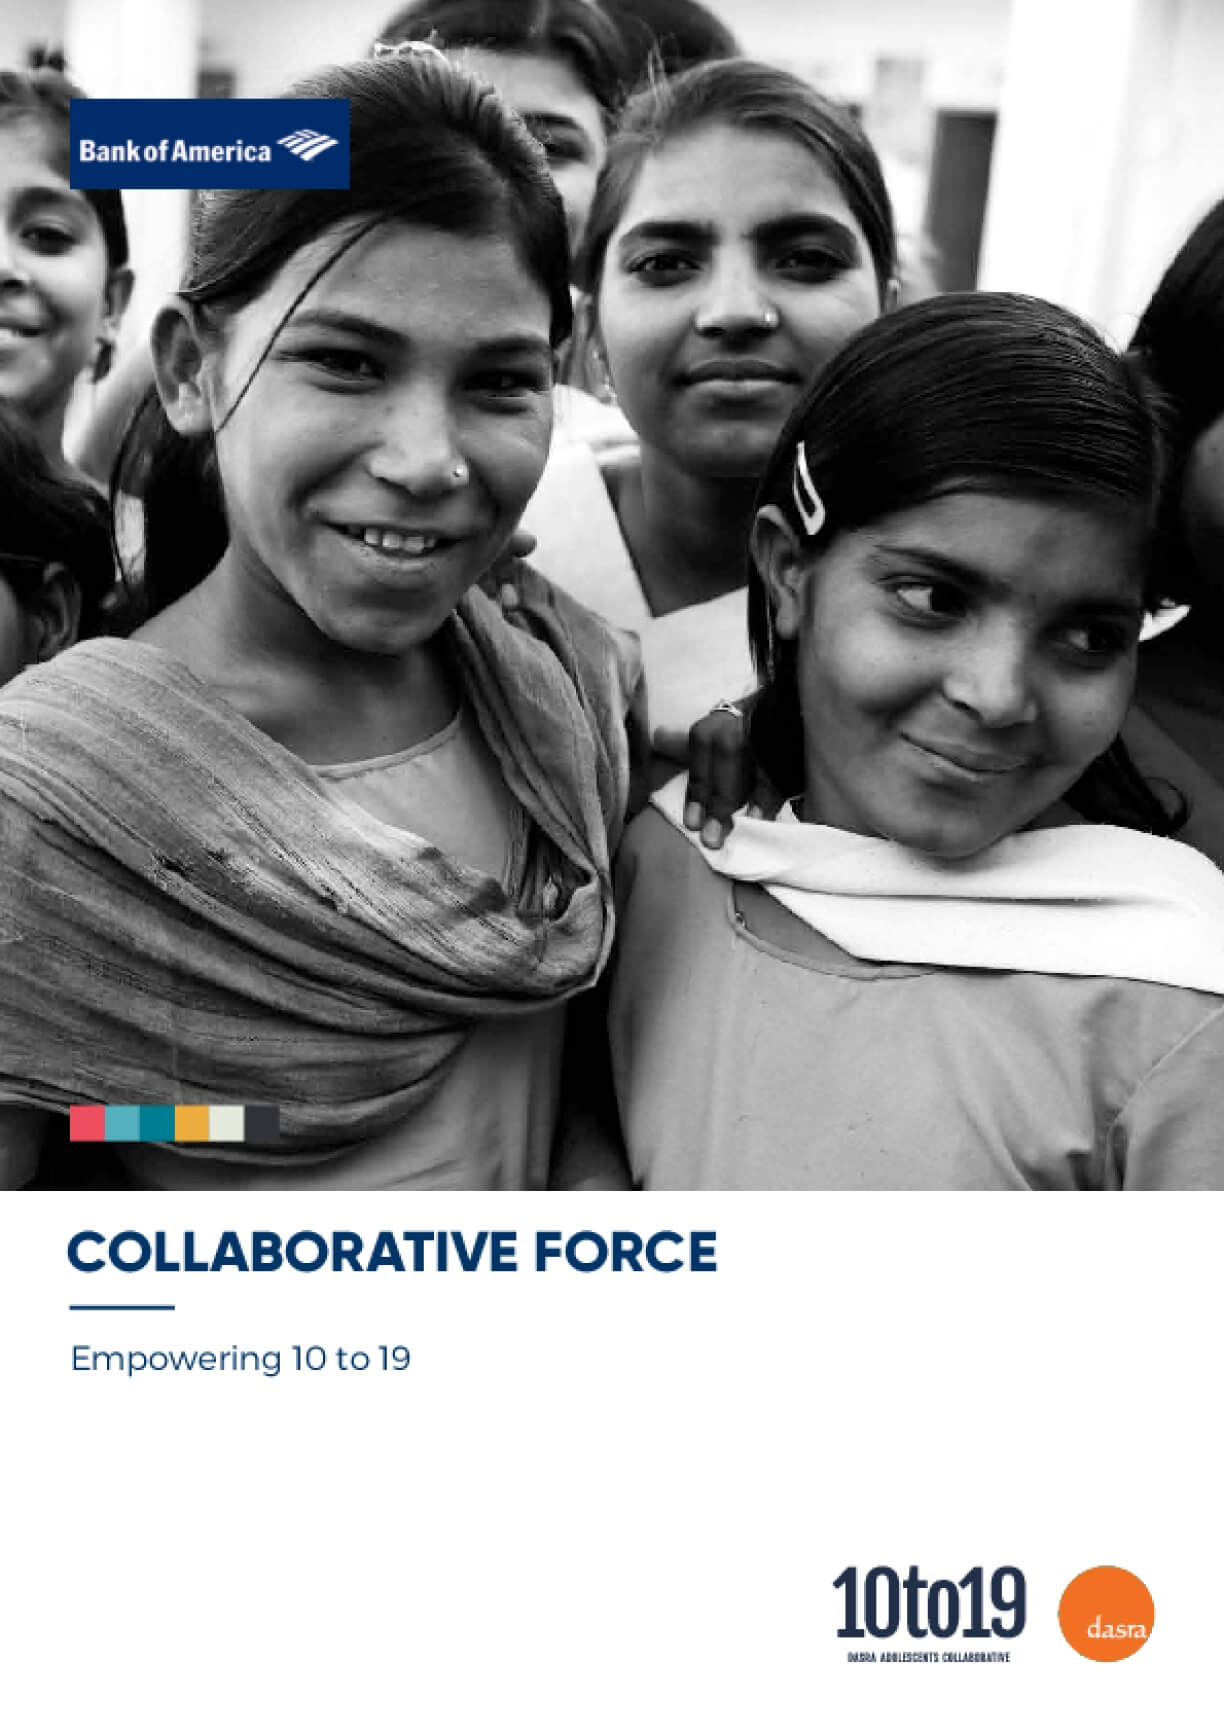 Collaborative Force: Empowering 10 to 19